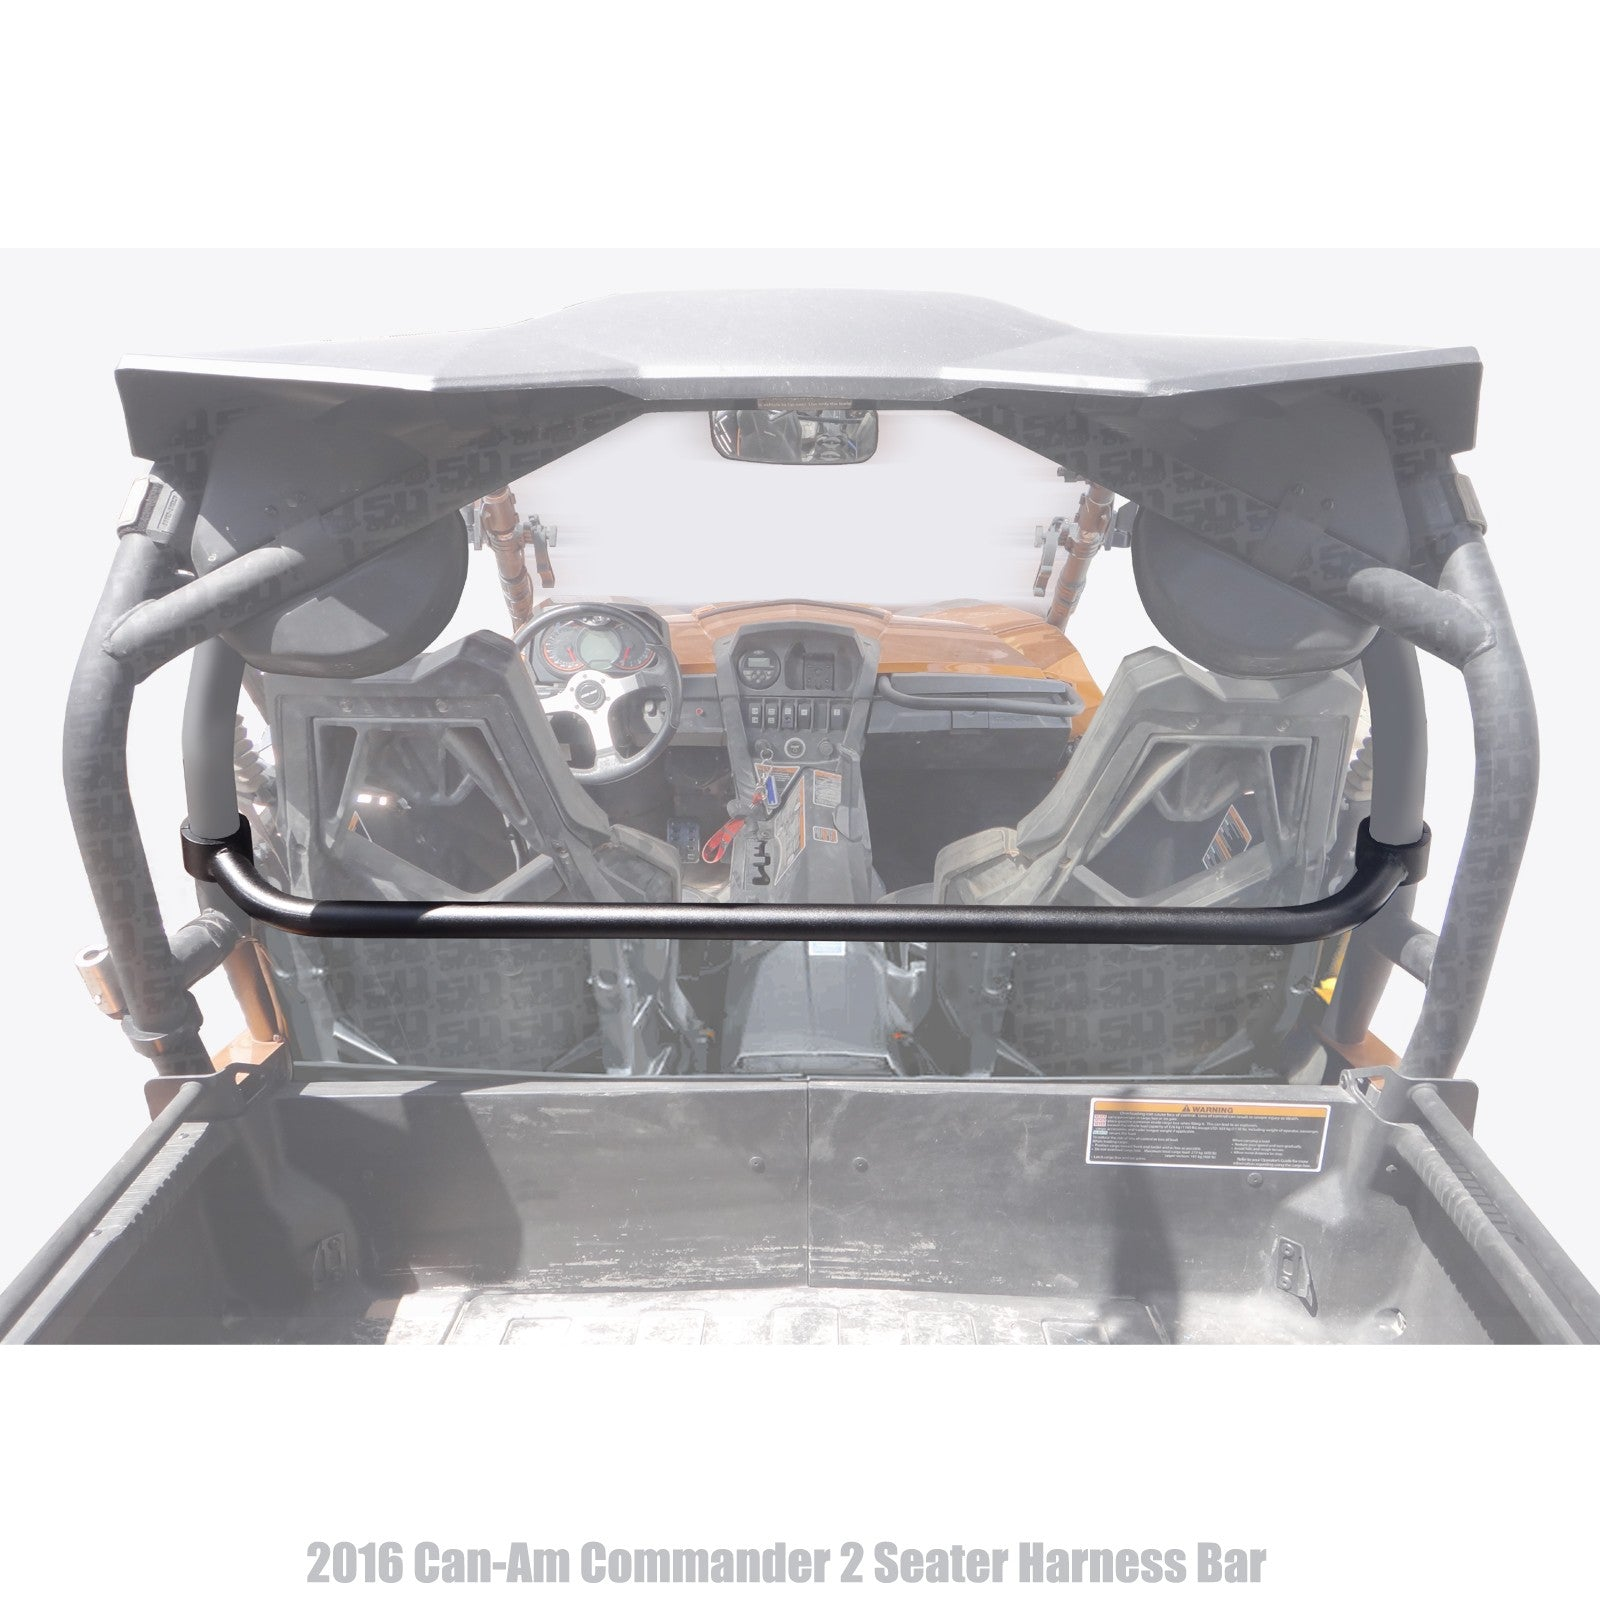 Can-Am Commander 2 Seater Harness Bar 50 Caliber Racing